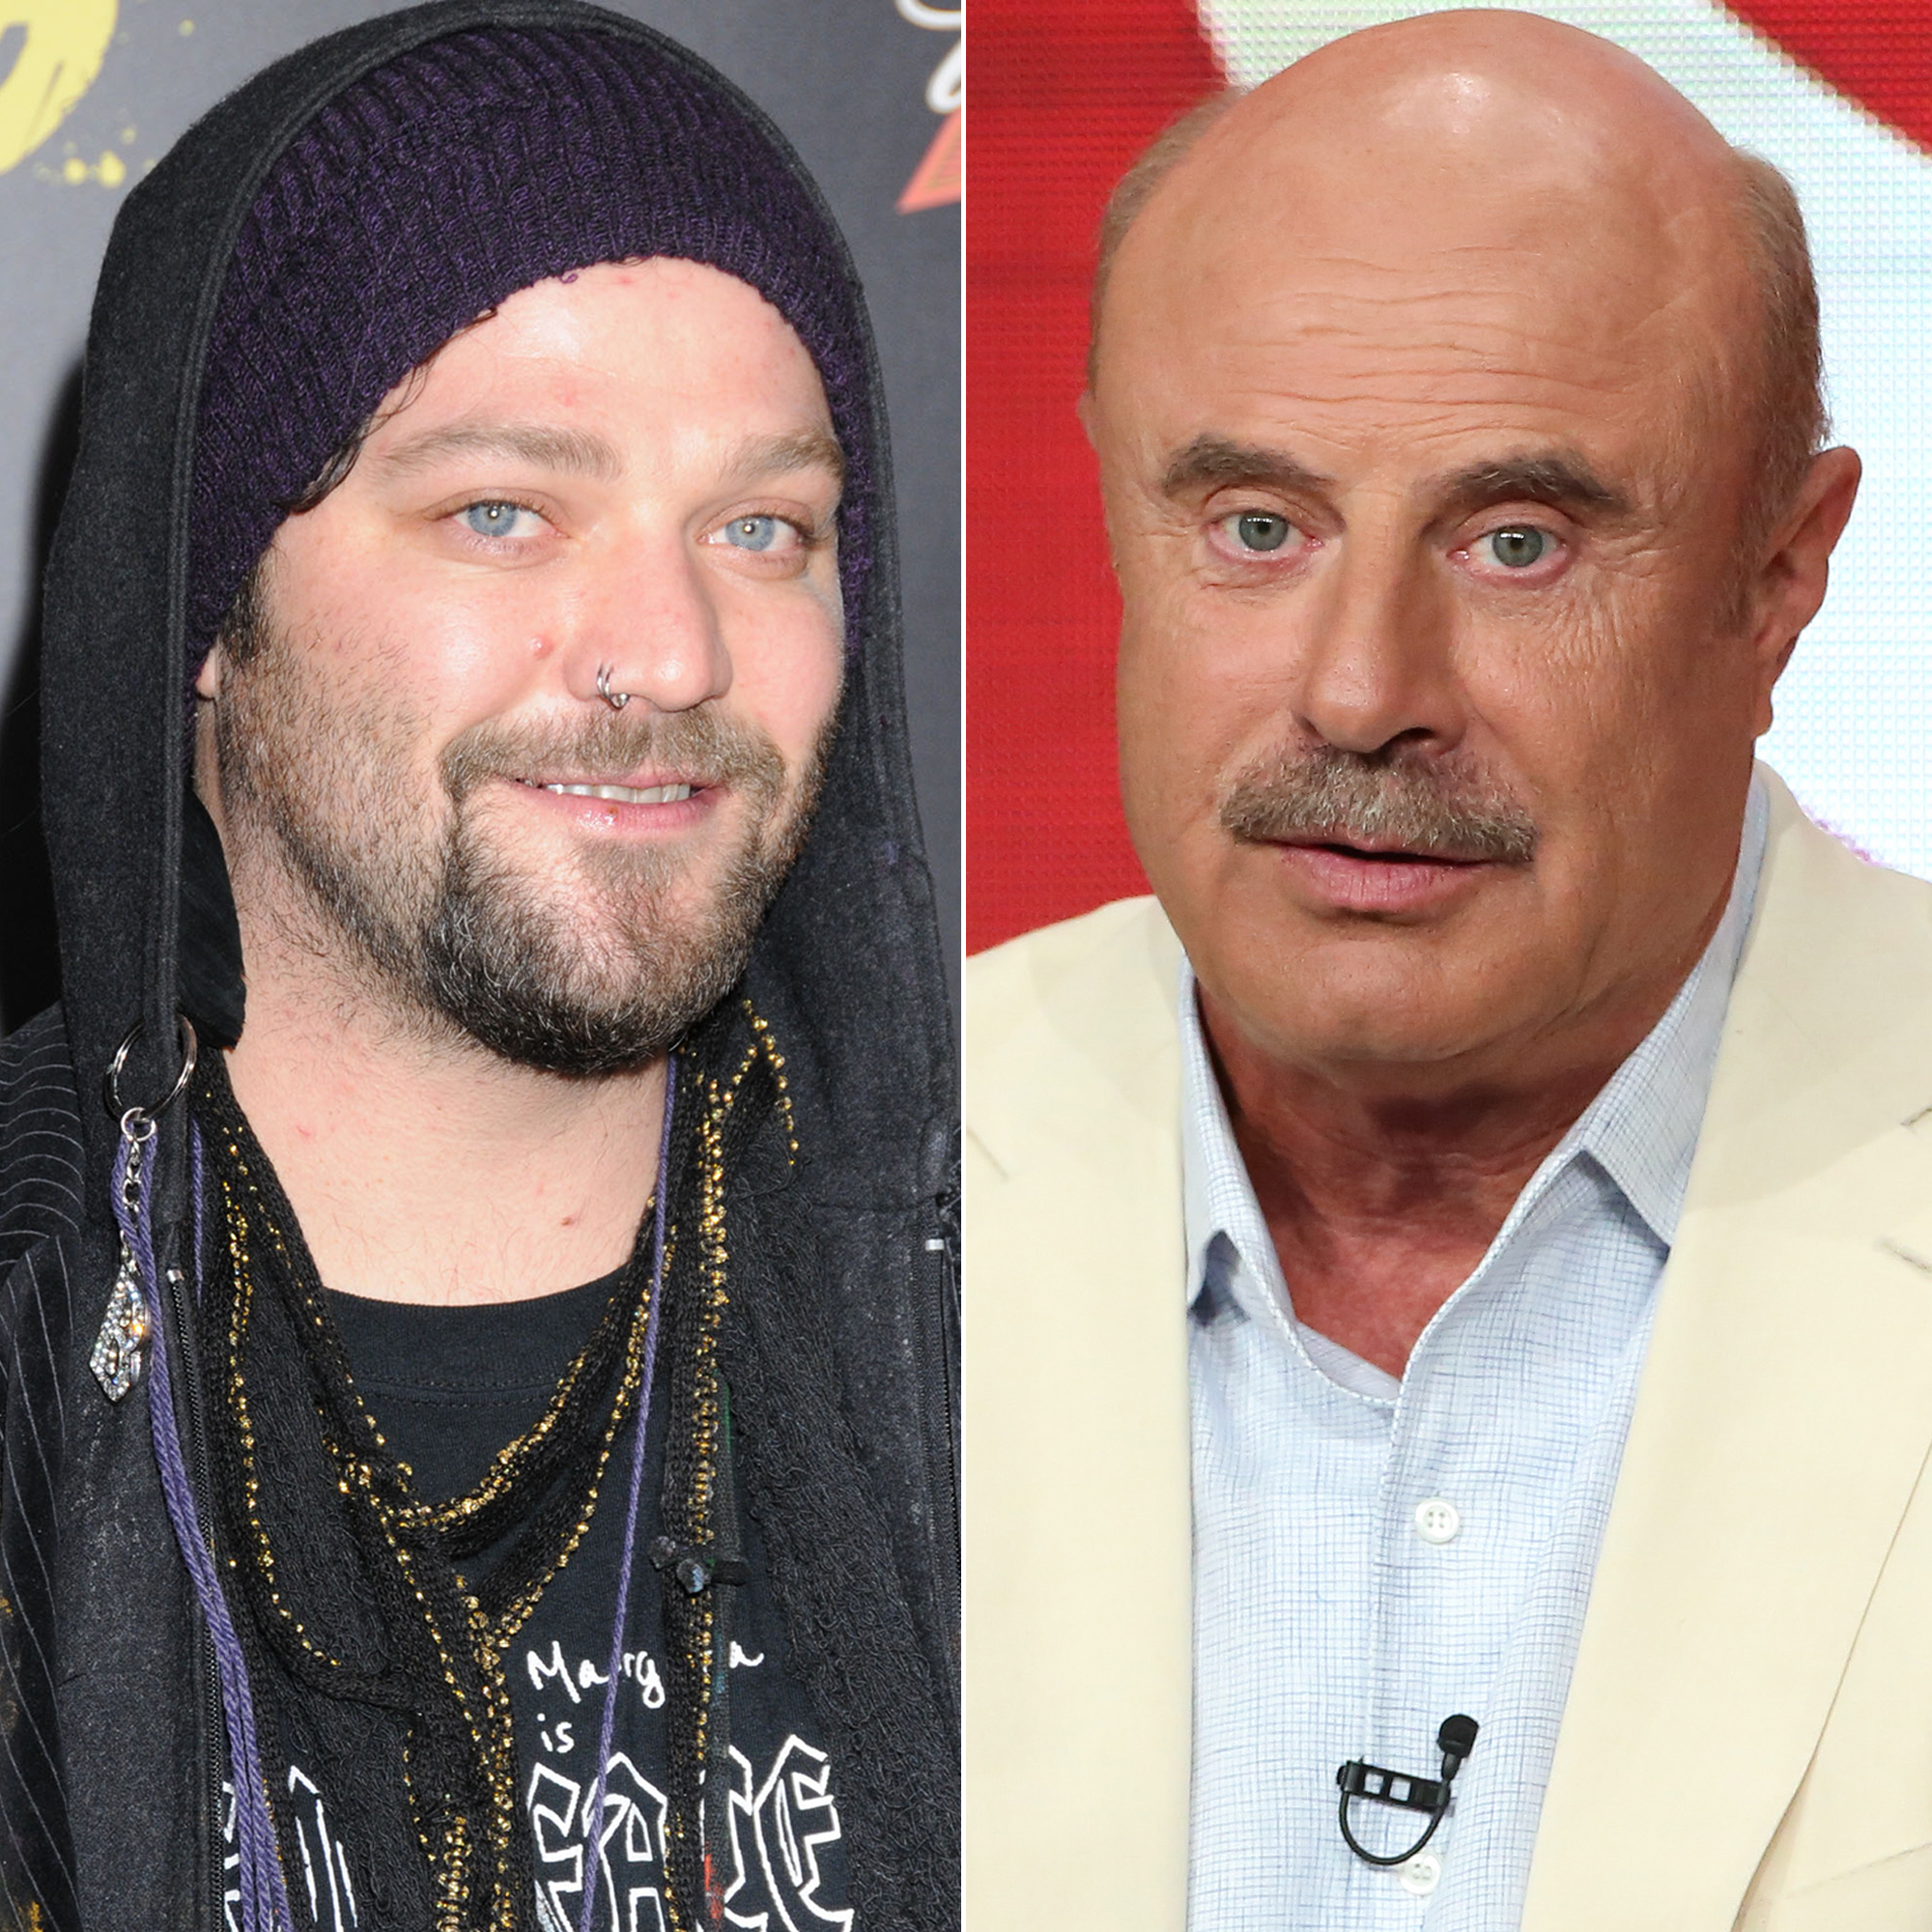 Bam Margera Asks Dr  Phil to Help 'Family From Falling Apart'